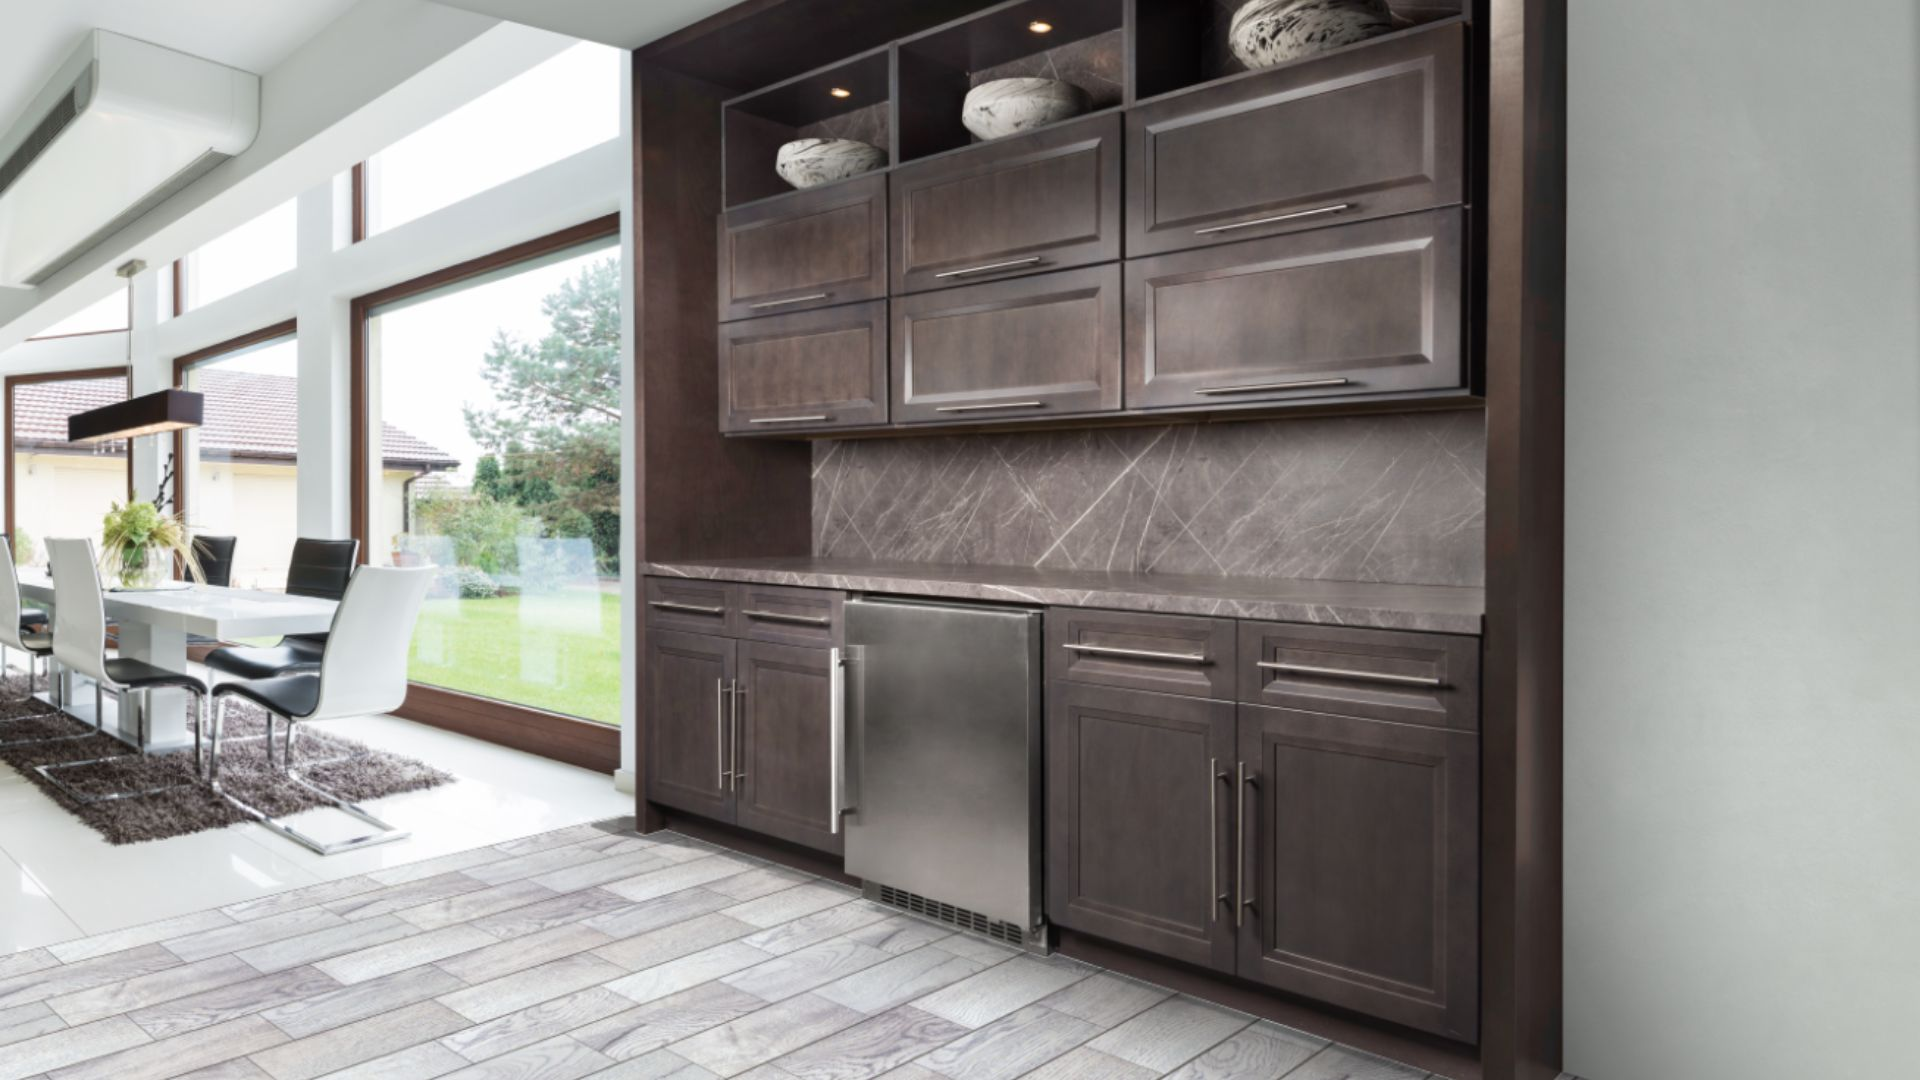 Onyx Cobblestone is sure to enhance the kitchen's design radiating a sophisticated and transitional look and feel.